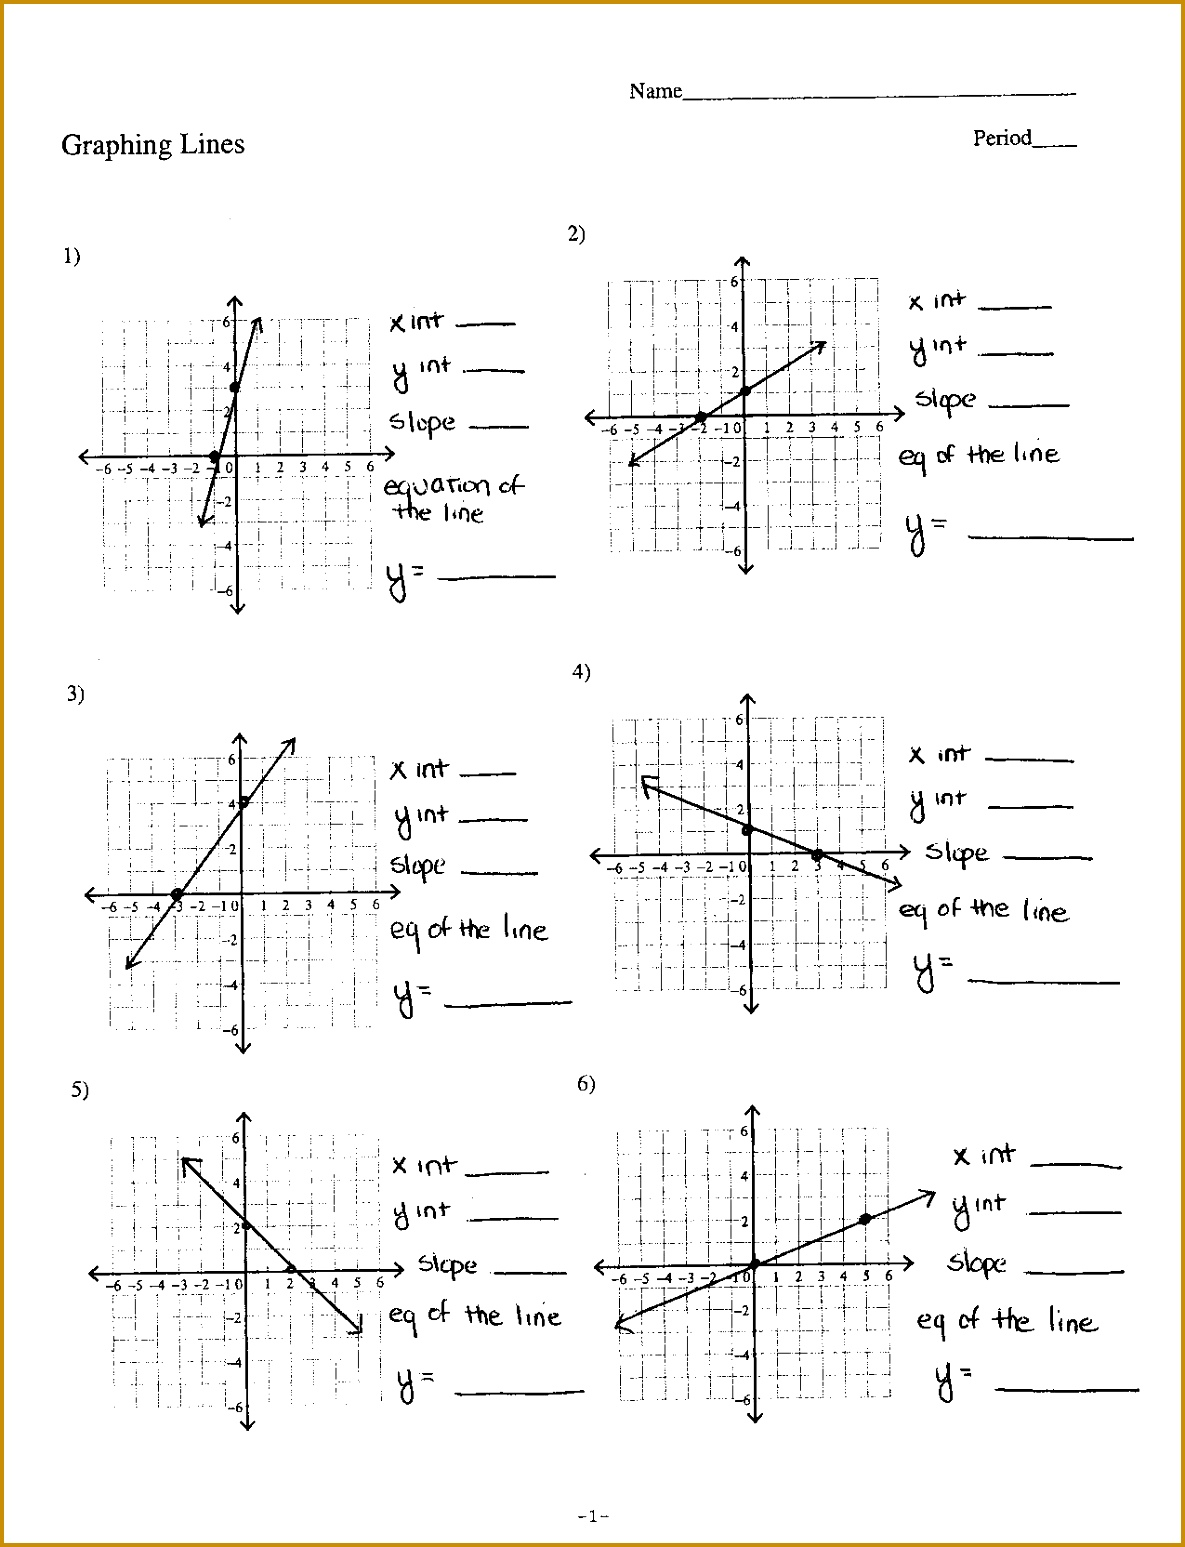 7 Graphing Linear Inequalities Worksheet